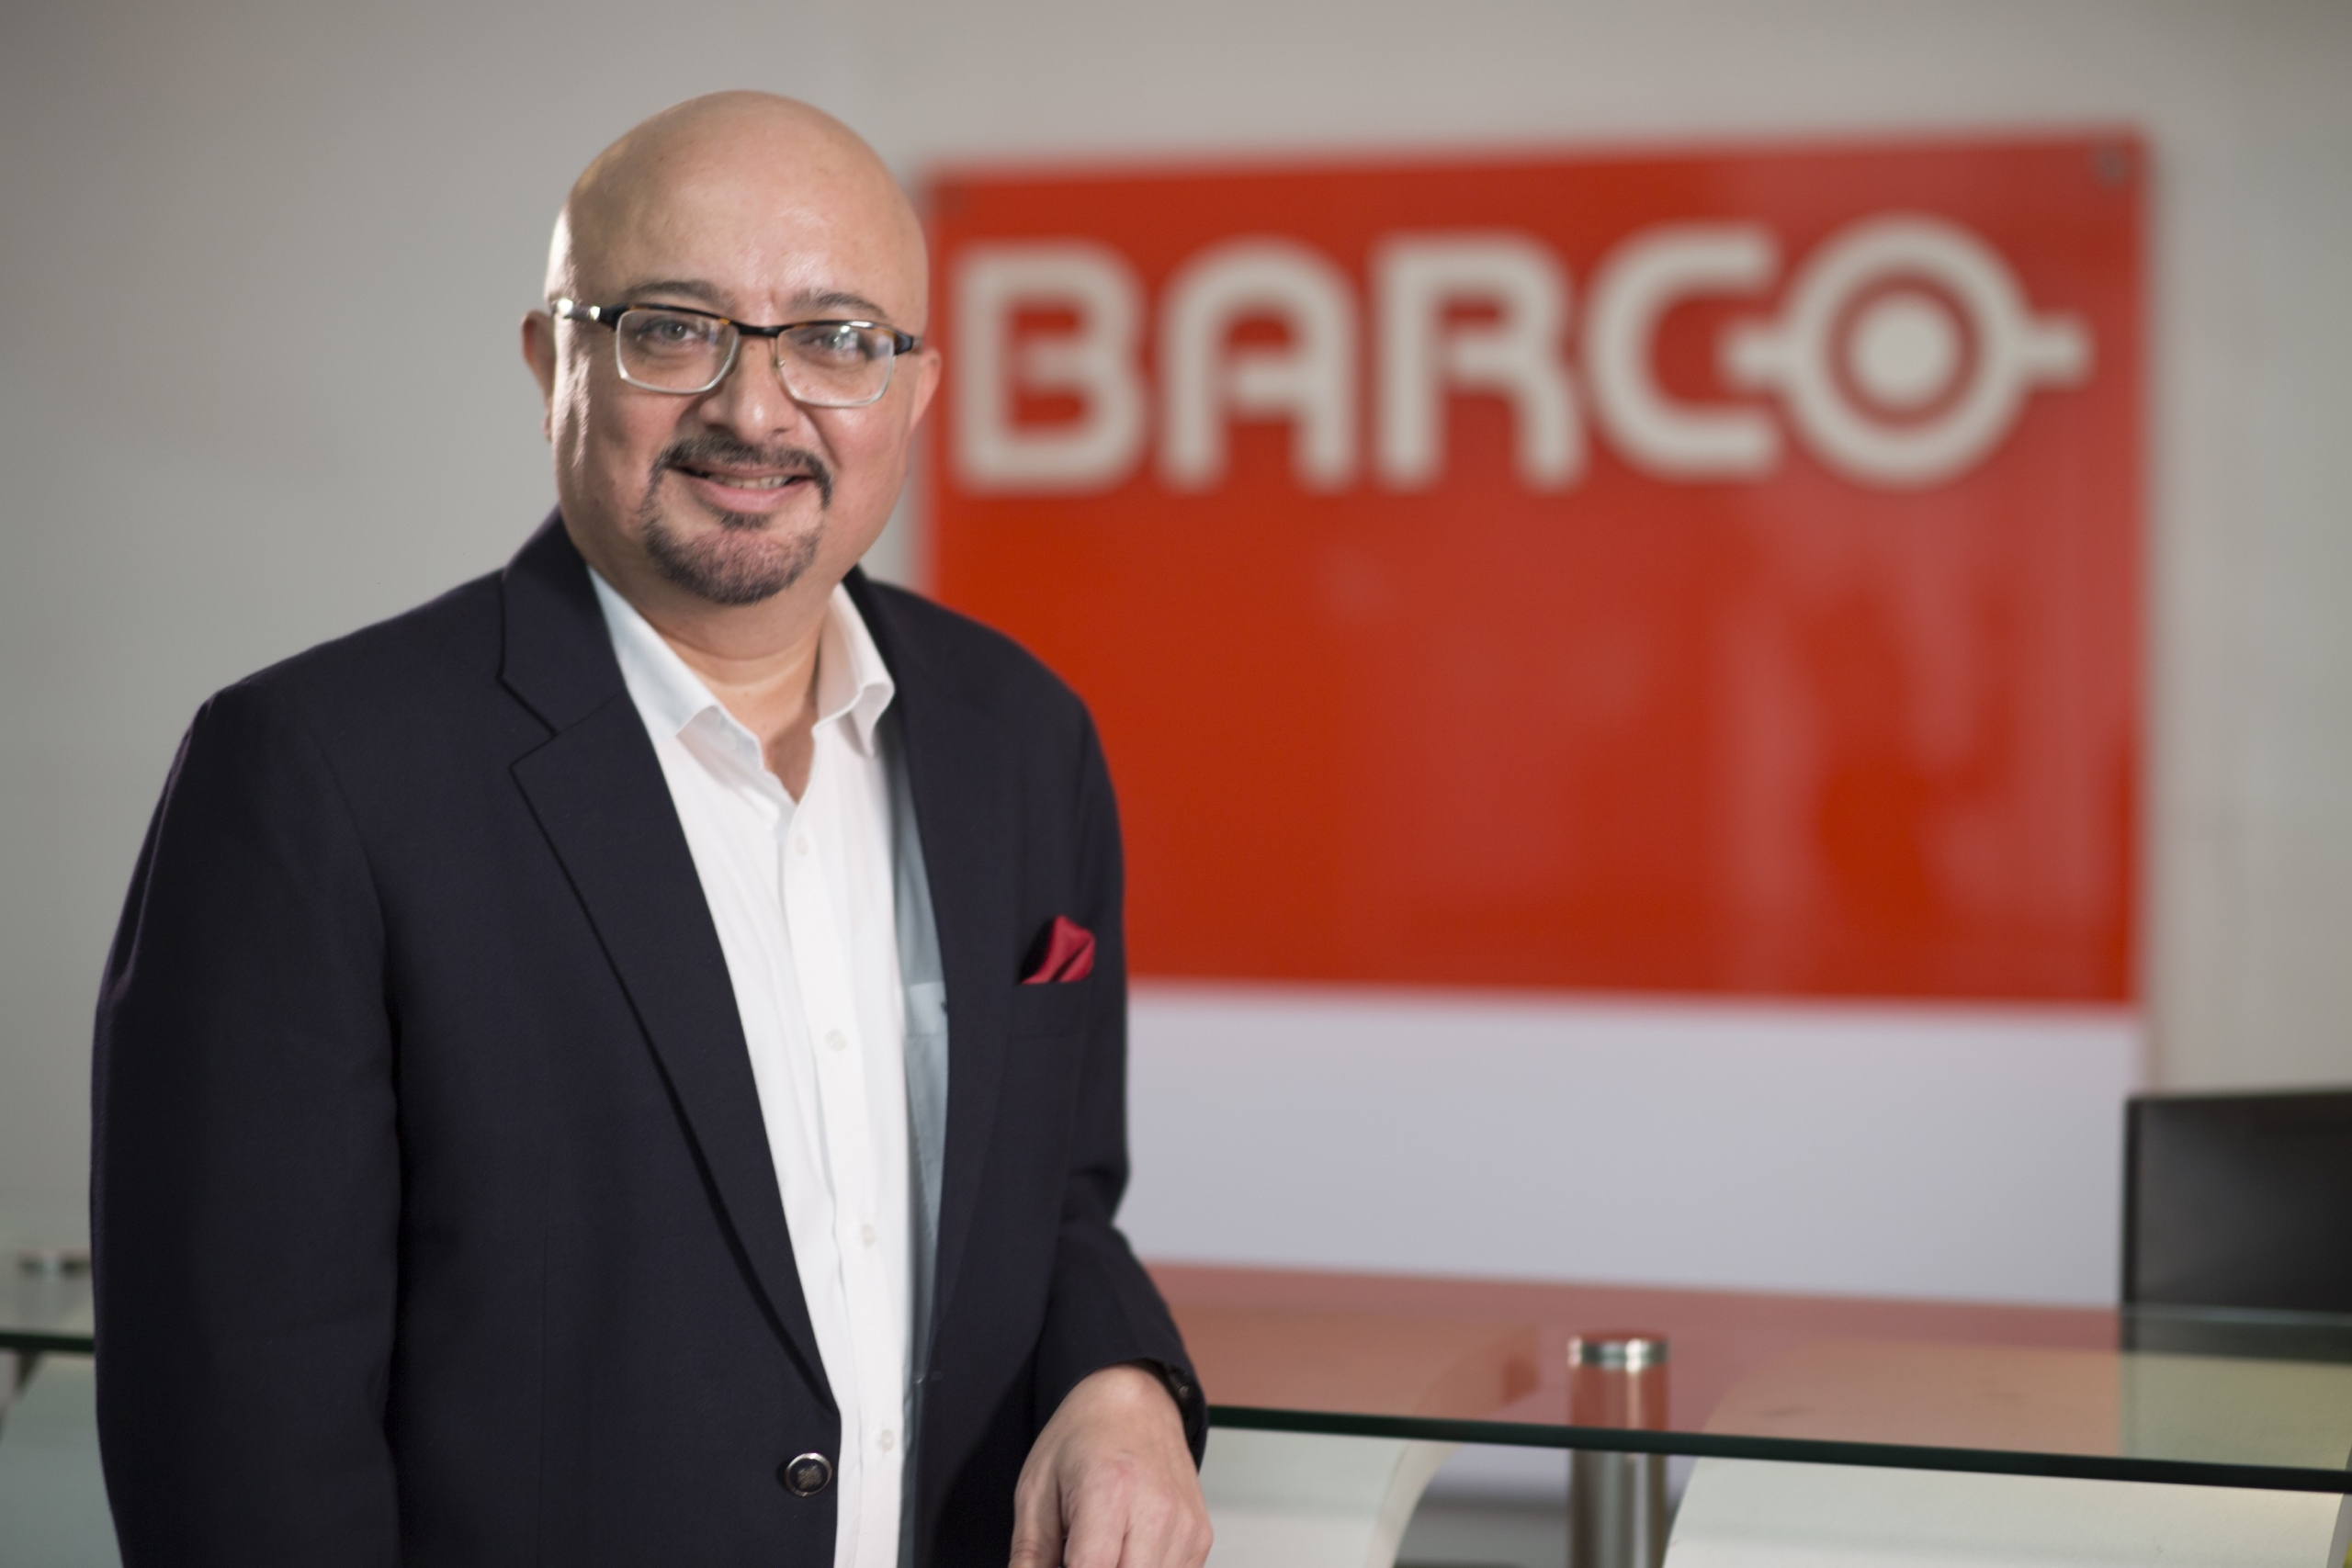 Barco Announces NEXXISTM Partnership with Sigma – Jones AV in India to Accelerate Next-Gen Healthcare Video Integration Solutions